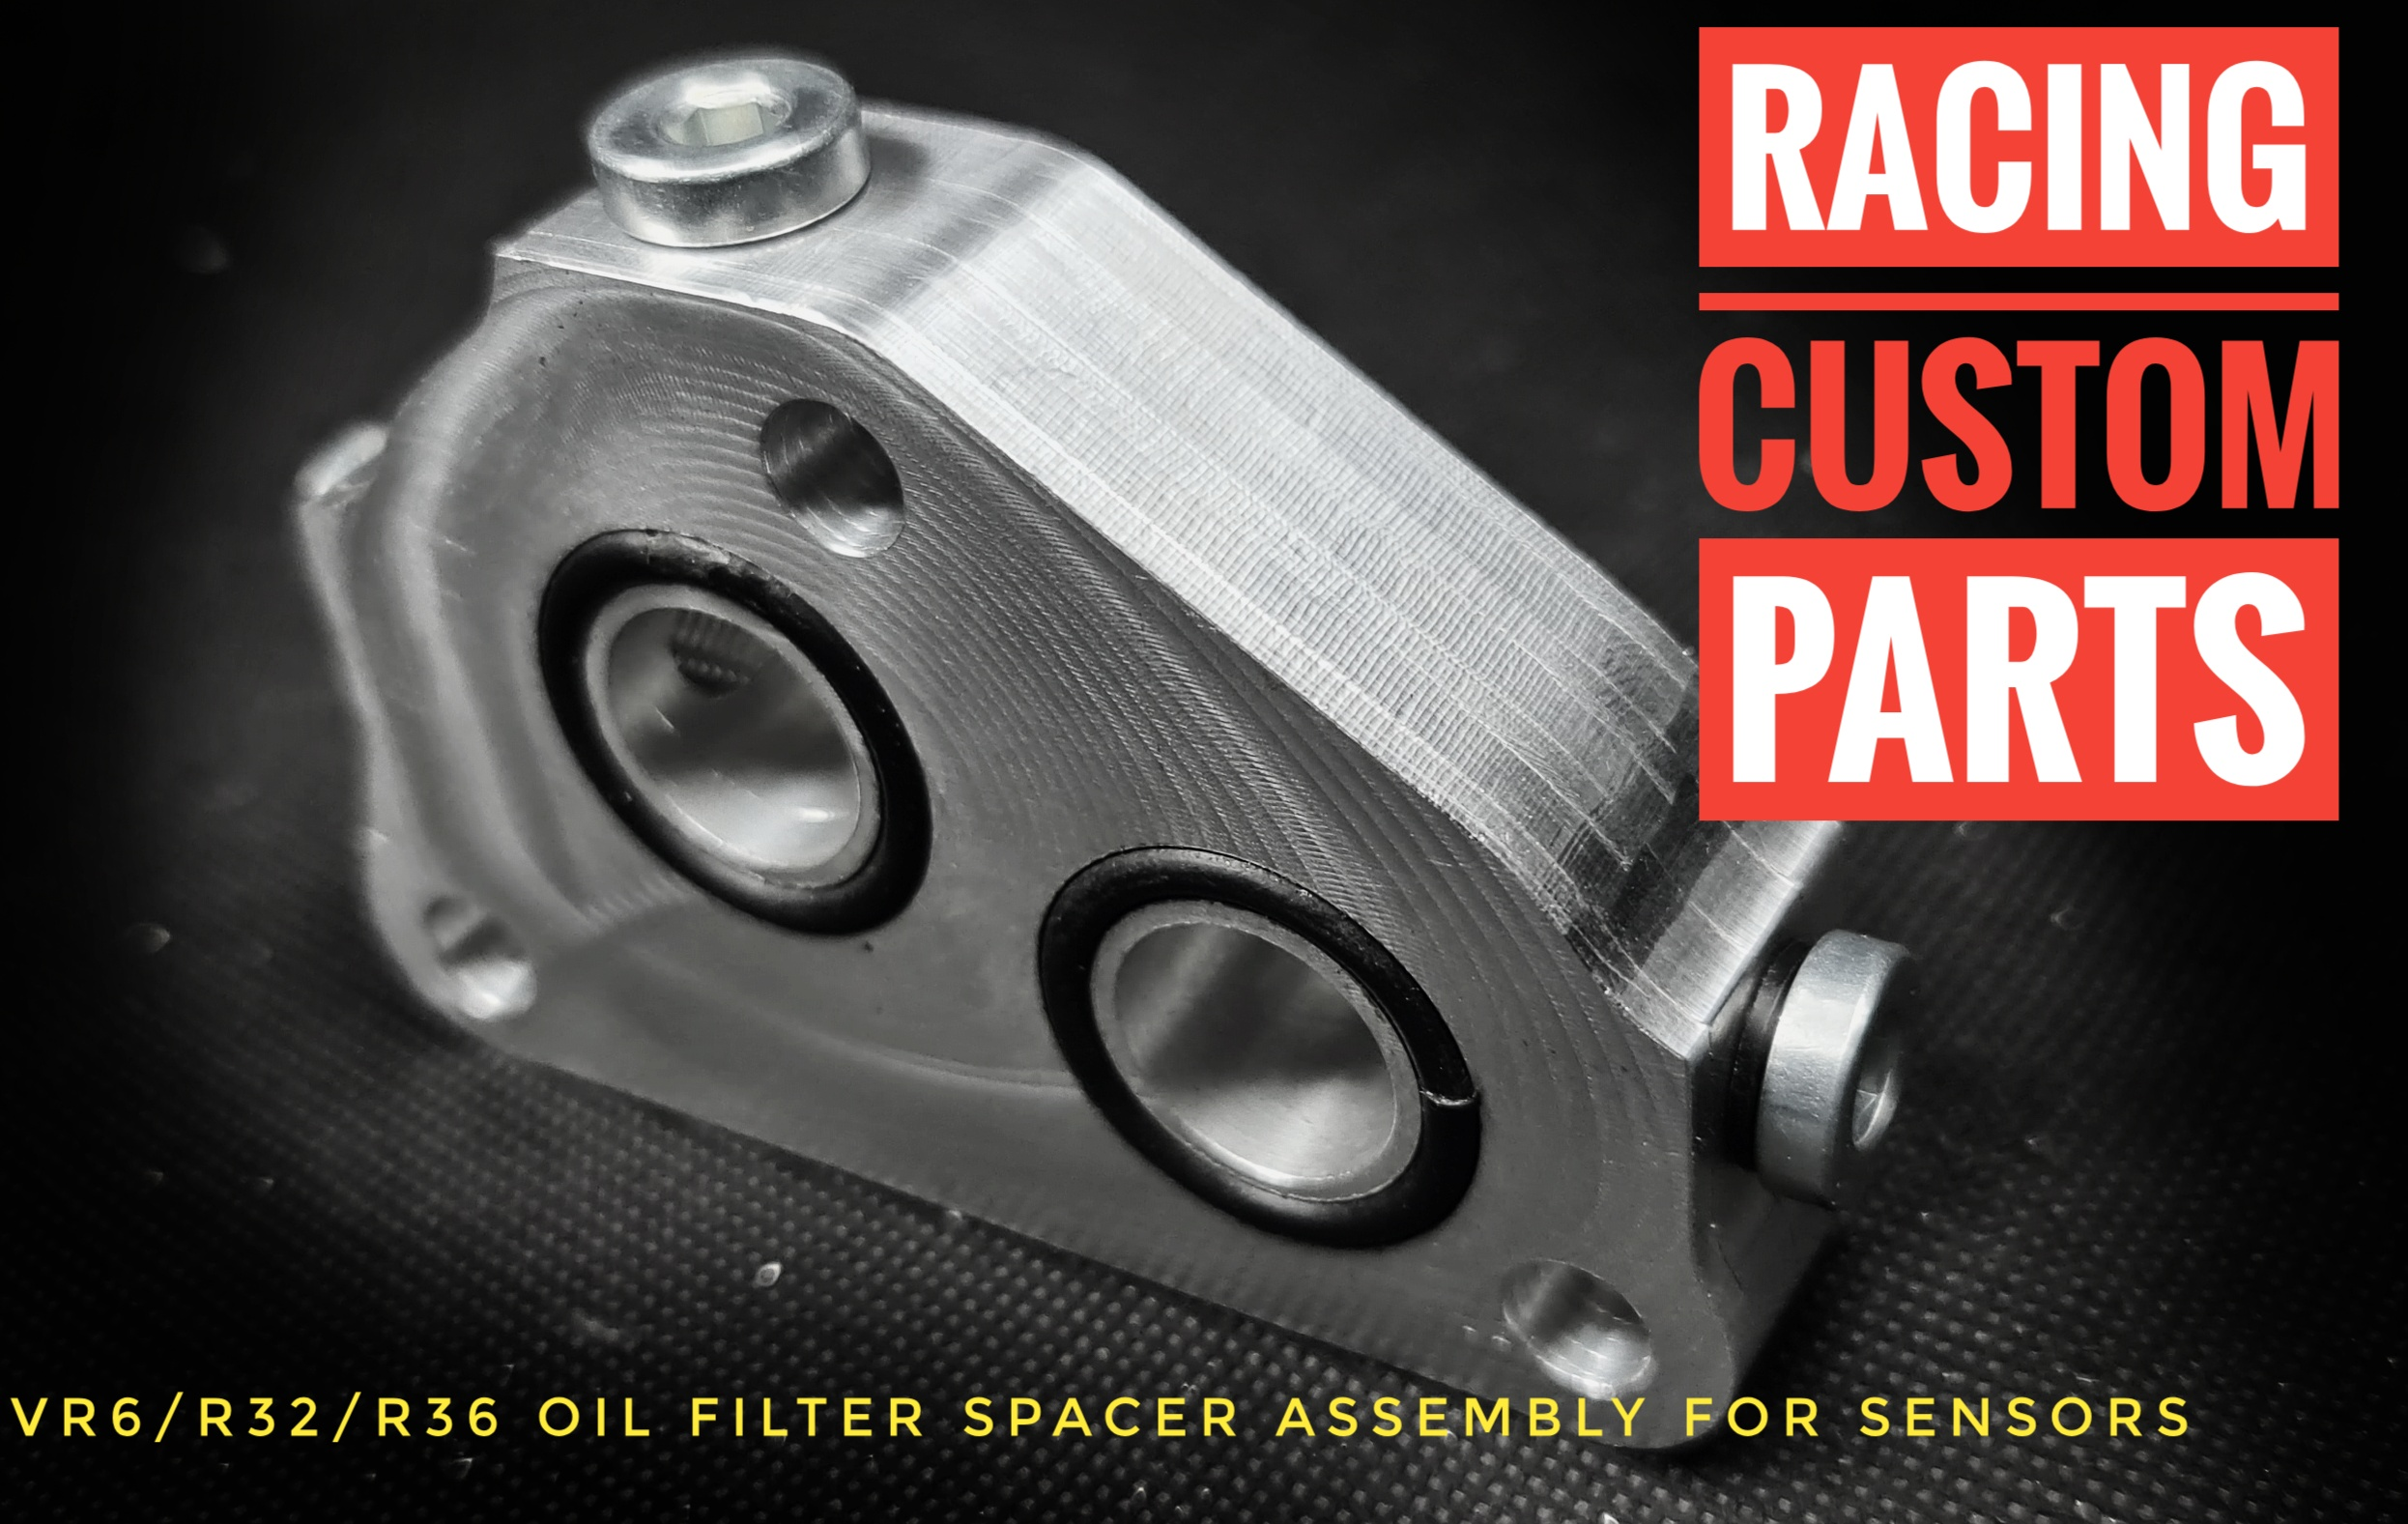 vr6 r32 r36 oil spacer assembly for sensors turbo billet cnc racing custom parts